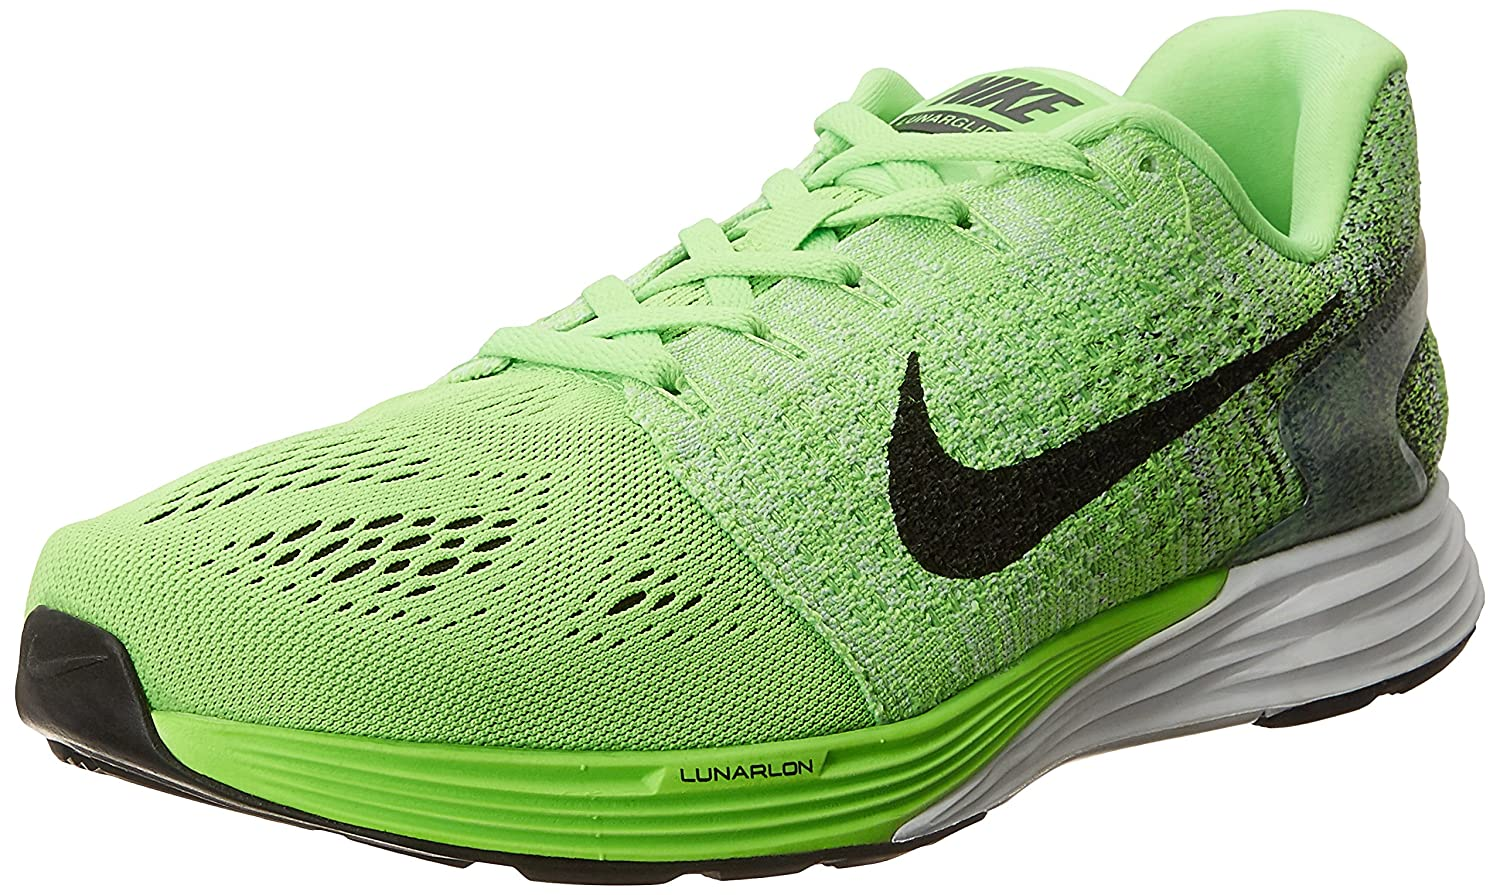 mago Catastrófico Poderoso  Buy Nike Men's Lunarglide 7 Green and Black Running Shoes - 7 UK/India (41  EU)(8 US) at Amazon.in